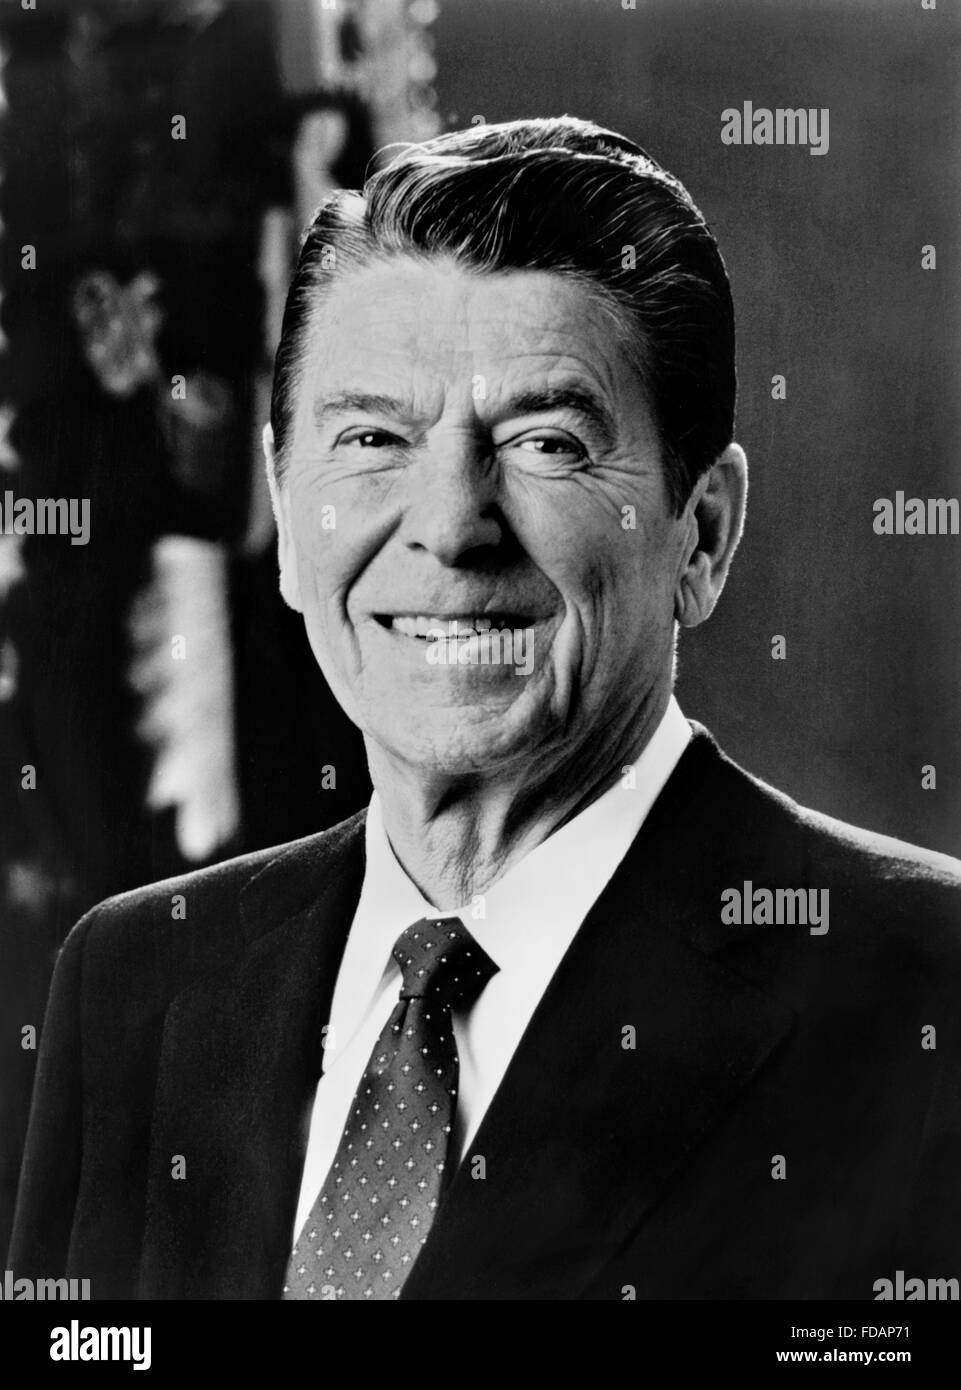 Ronald Reagan. Official White House portrait of Ronald Reagan, the 40th President of the USA, c.1981-1983 - Stock Image